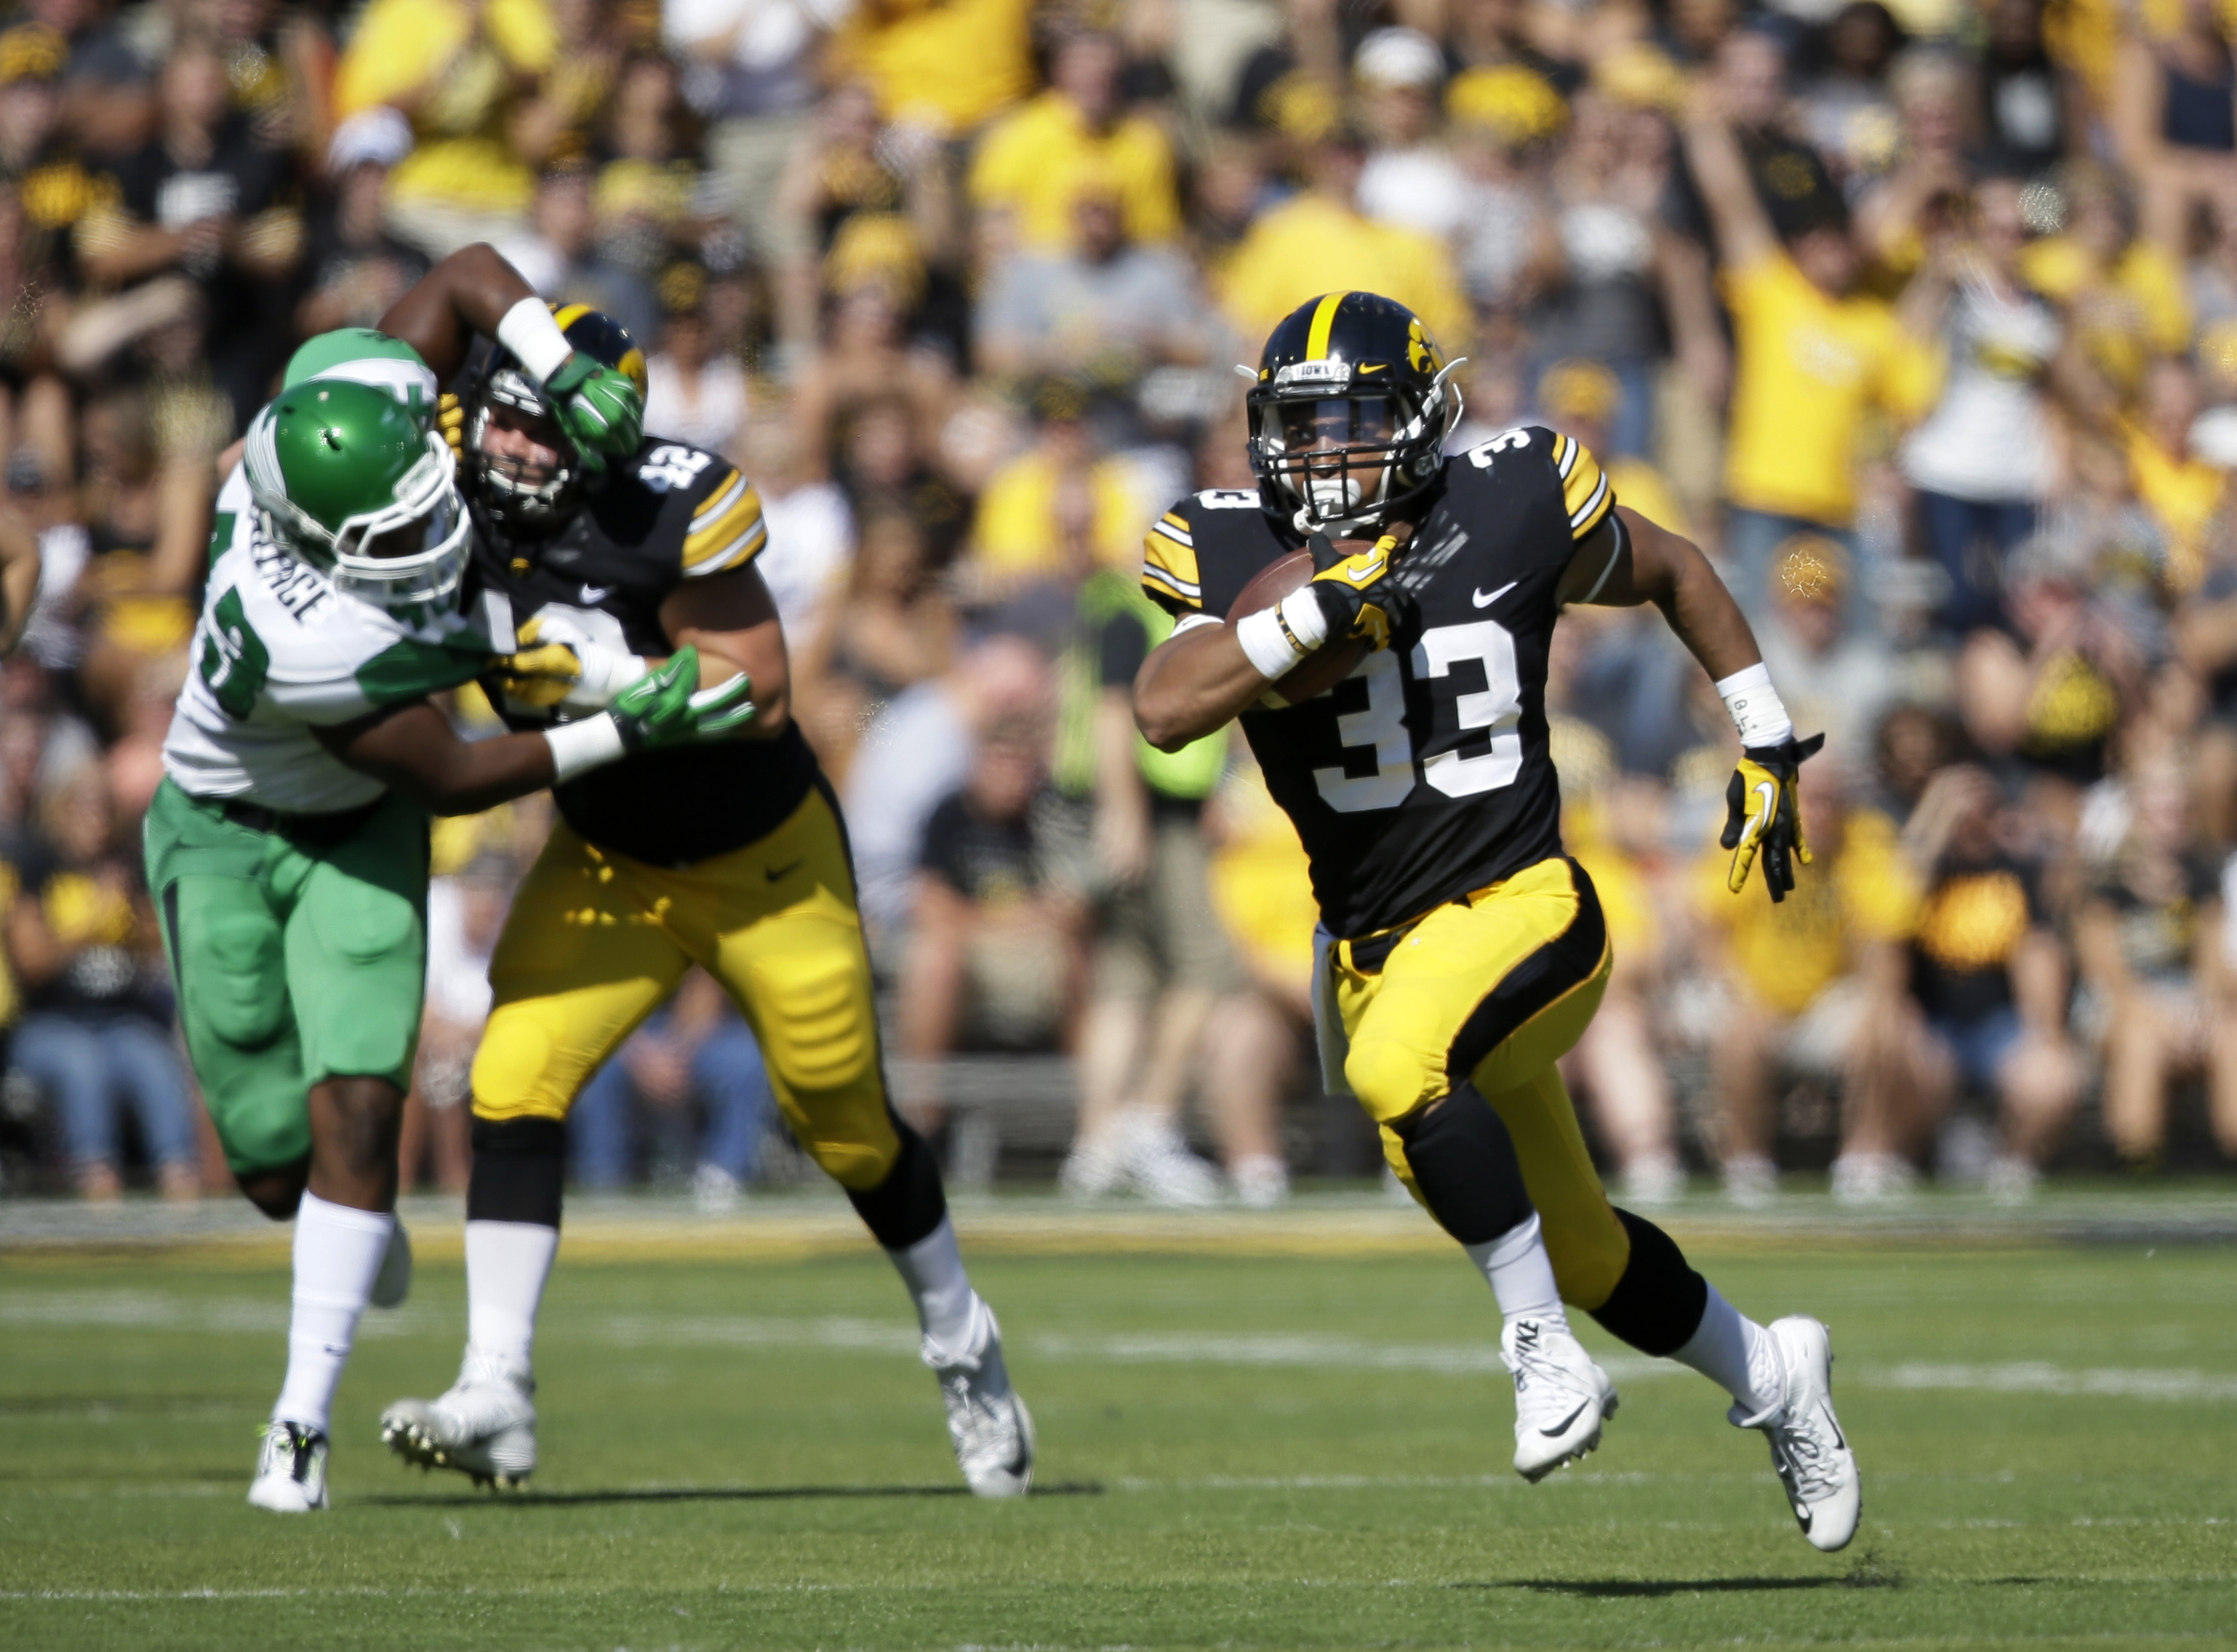 FILE - In this Sept. 26, 2015, file photo, Iowa running back Jordan Canzeri (33) carries the ball during an NCAA college football game against North Texas in Iowa City, Iowa. Iowa expects to have all four of the running backs in their rotation--Canzeri, L